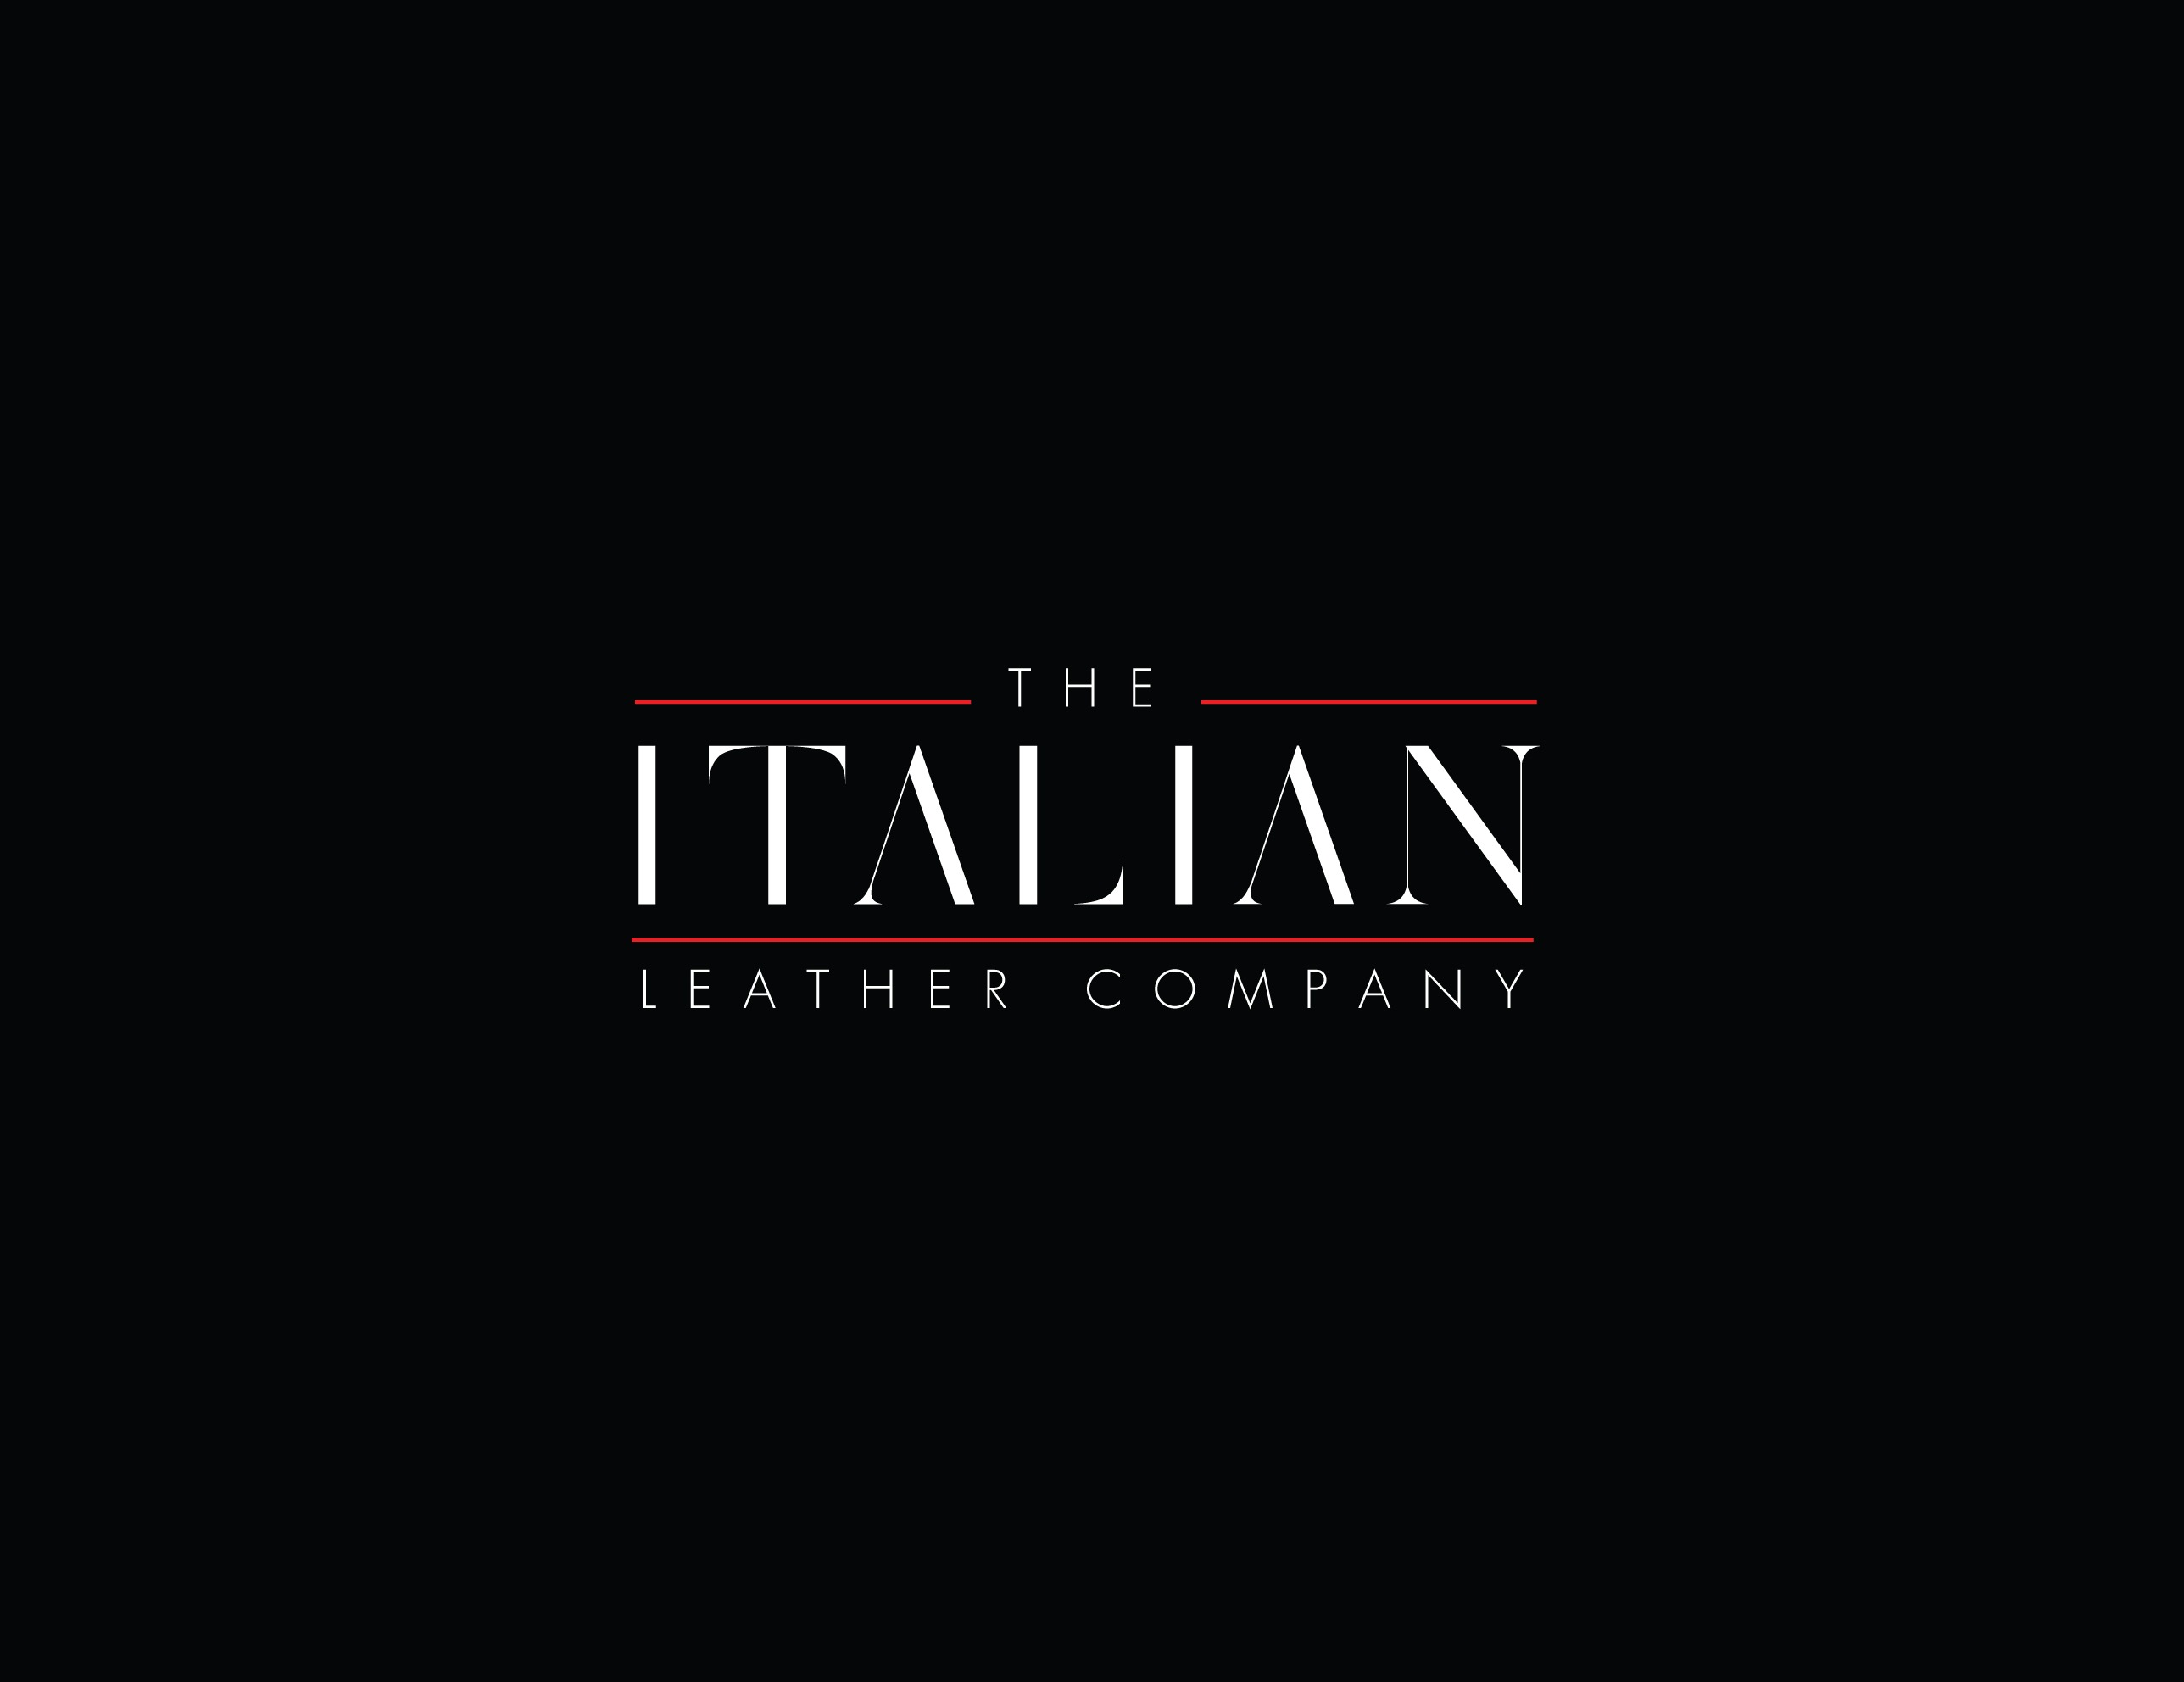 The Italian Leather Company